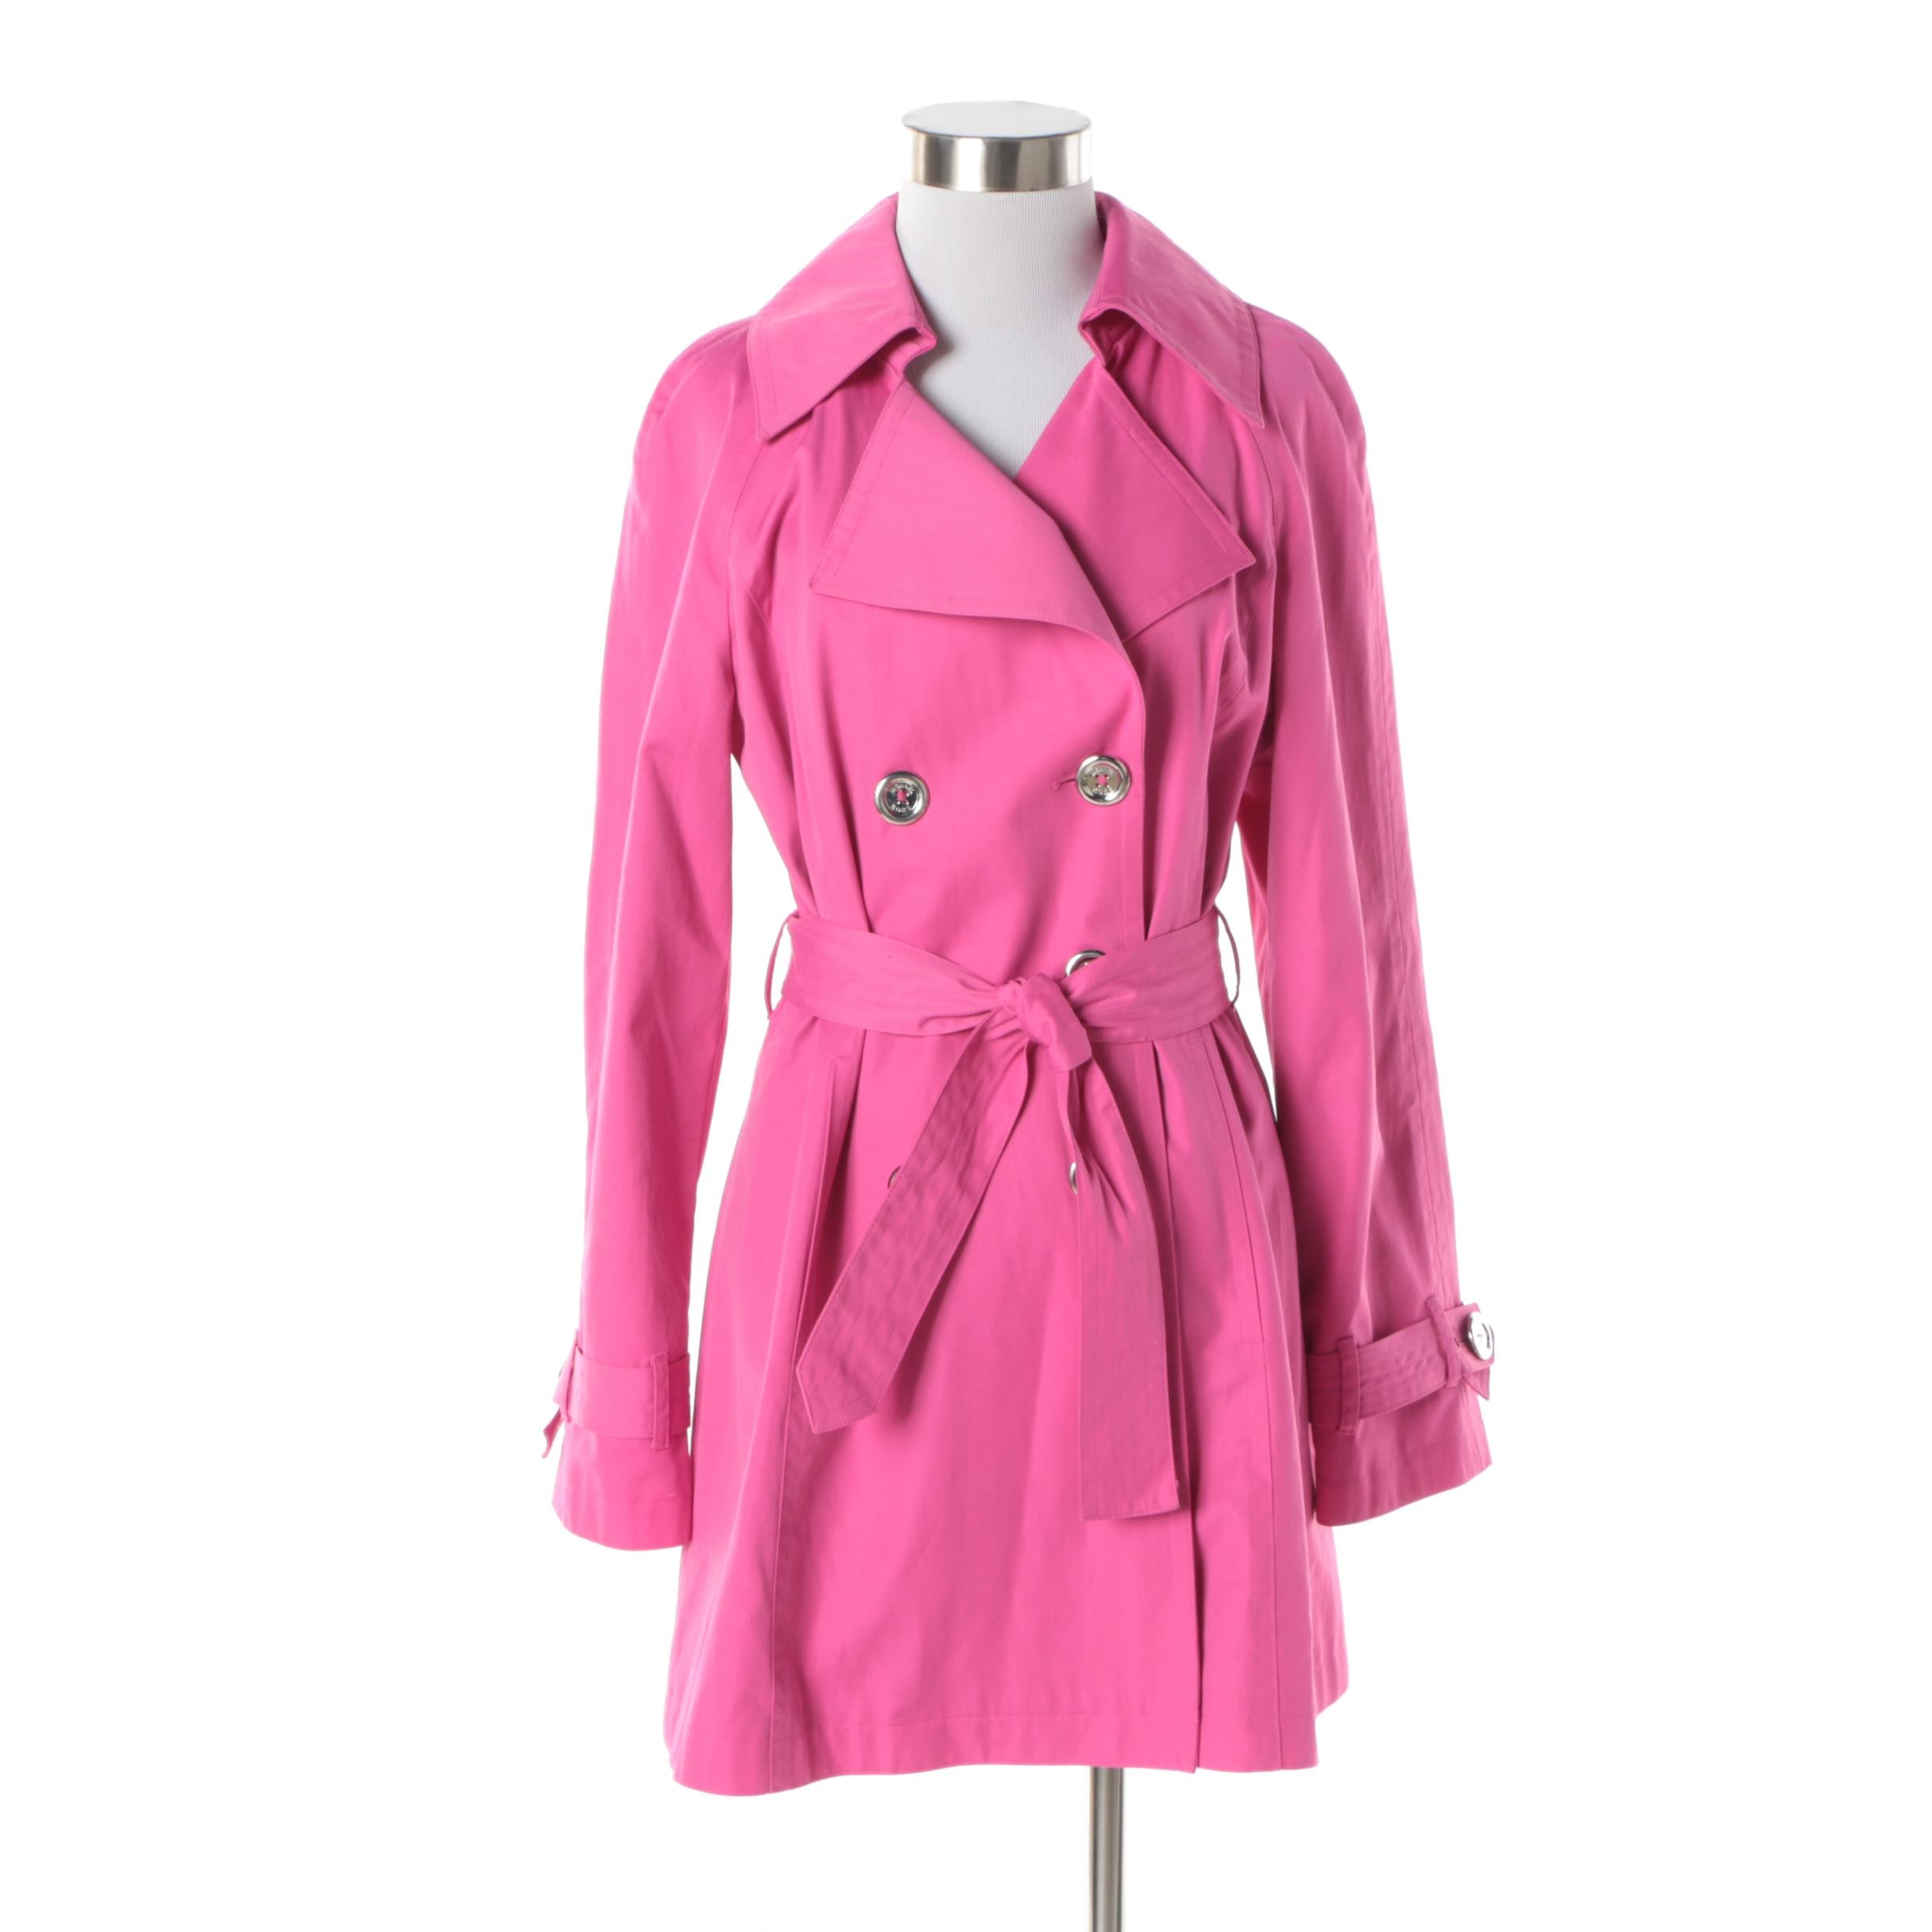 MICHAEL Michael Kors Hot Pink Double-Breasted Trench Coat